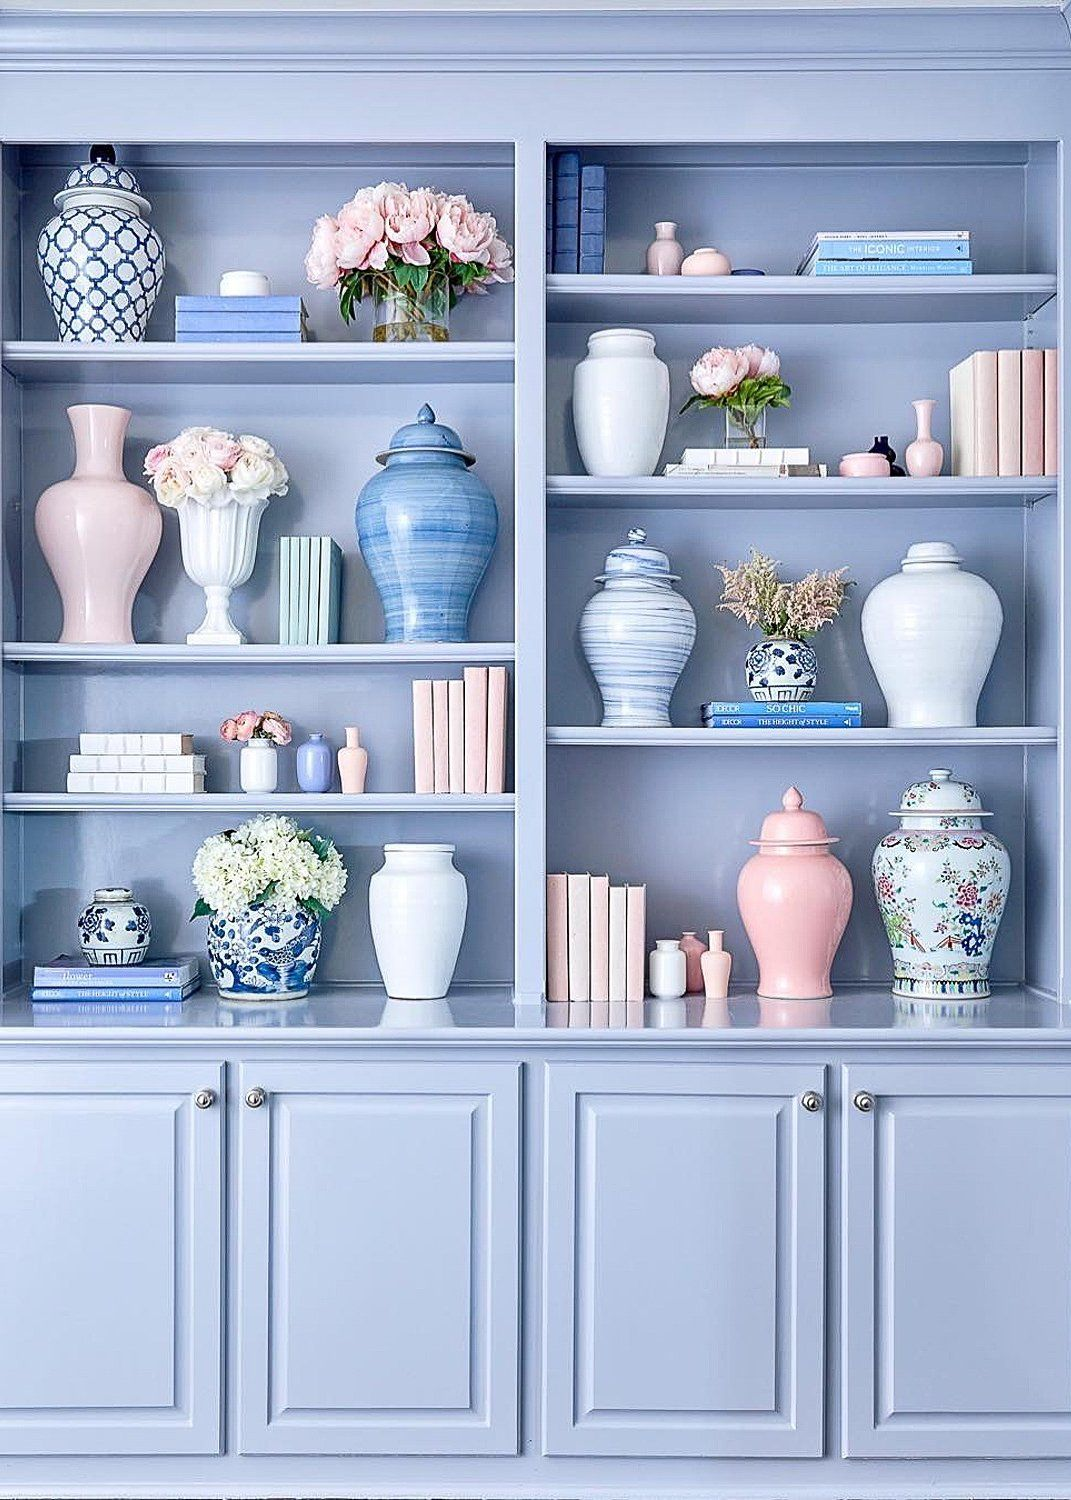 Painted Blue Built-in Bookshelves | Modern Ginger Jar Styling Shelves | Styling Bookshelves: The Ultimate How-To Guide | Charleston Blonde  #shelfstyling #stylingbookshelves #bookshelfinspo #shelfie #gingerjars